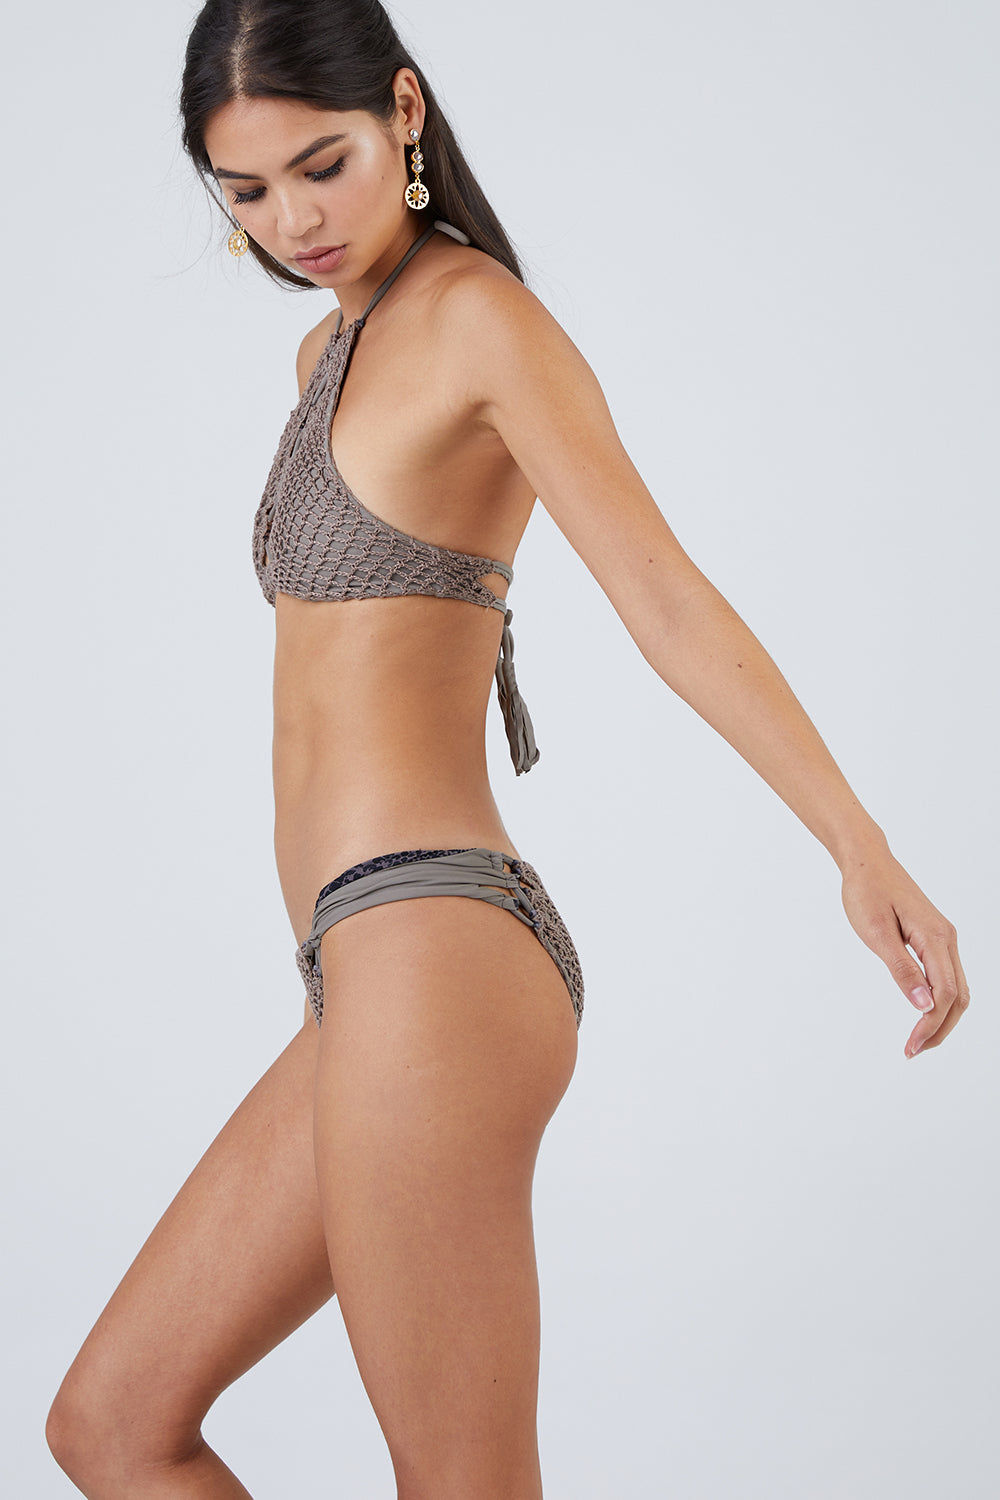 ACACIA Papio Cheeky Crochet Bikini Bottom - Cement Bikini Bottom | Cement| Acacia Papio Moderate Bottom - Cement Side View  Smooth Wide Straps Lacing Side Detail Crochet Overlay Front & Back  Cheeky - Moderate Coverage